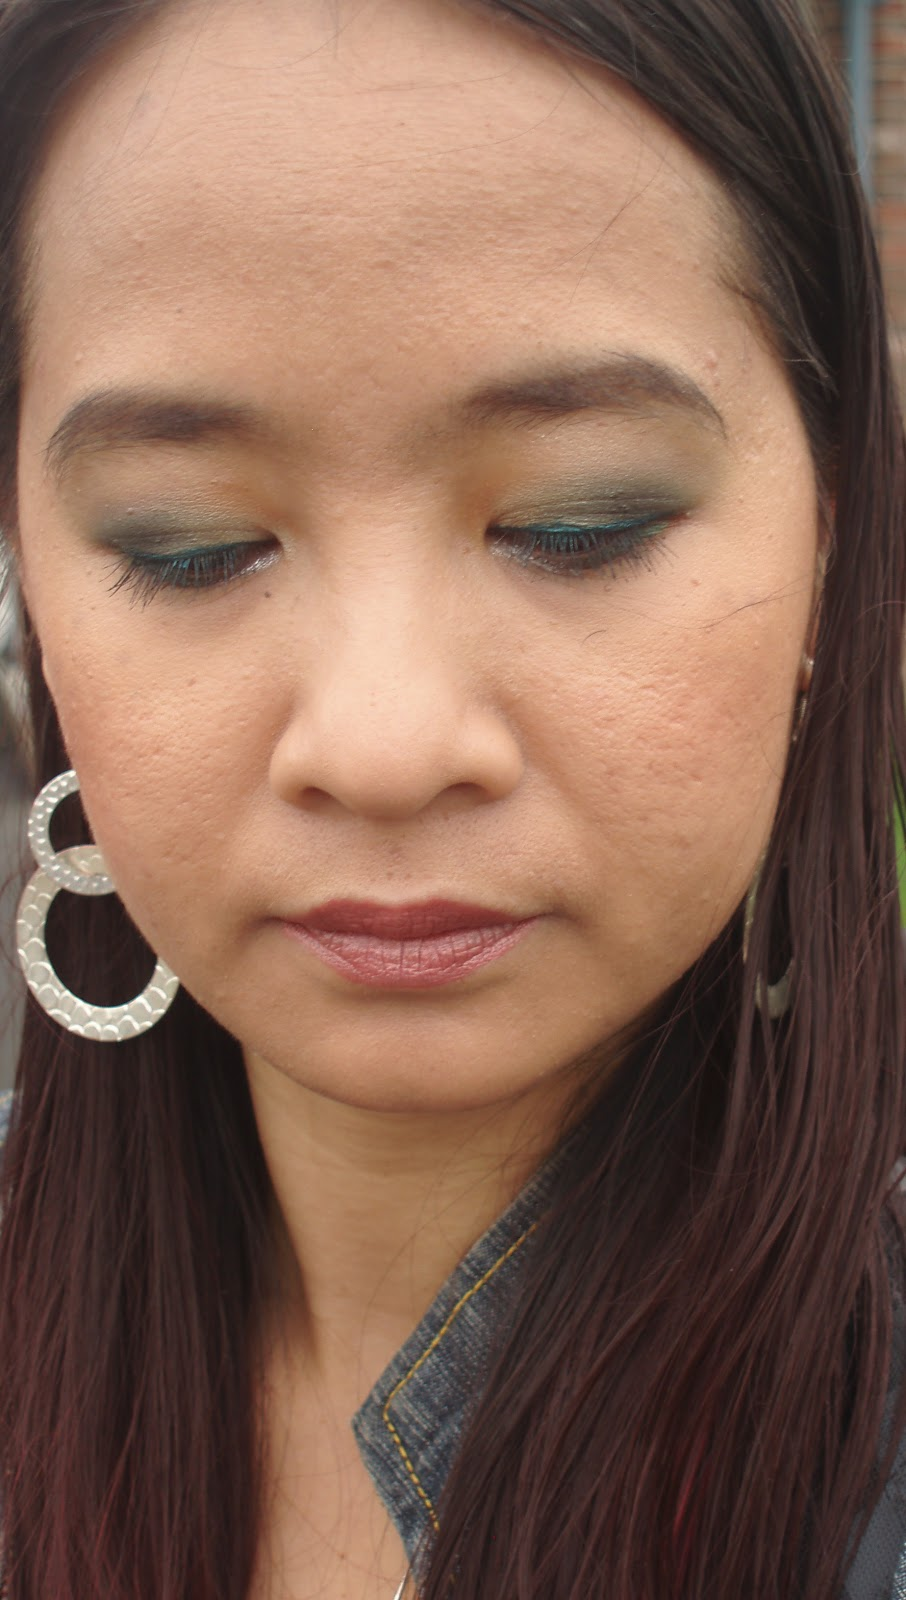 Eyeshadows: Annabelle Hawaian Hues palette (champagne as brow bone highlight ...